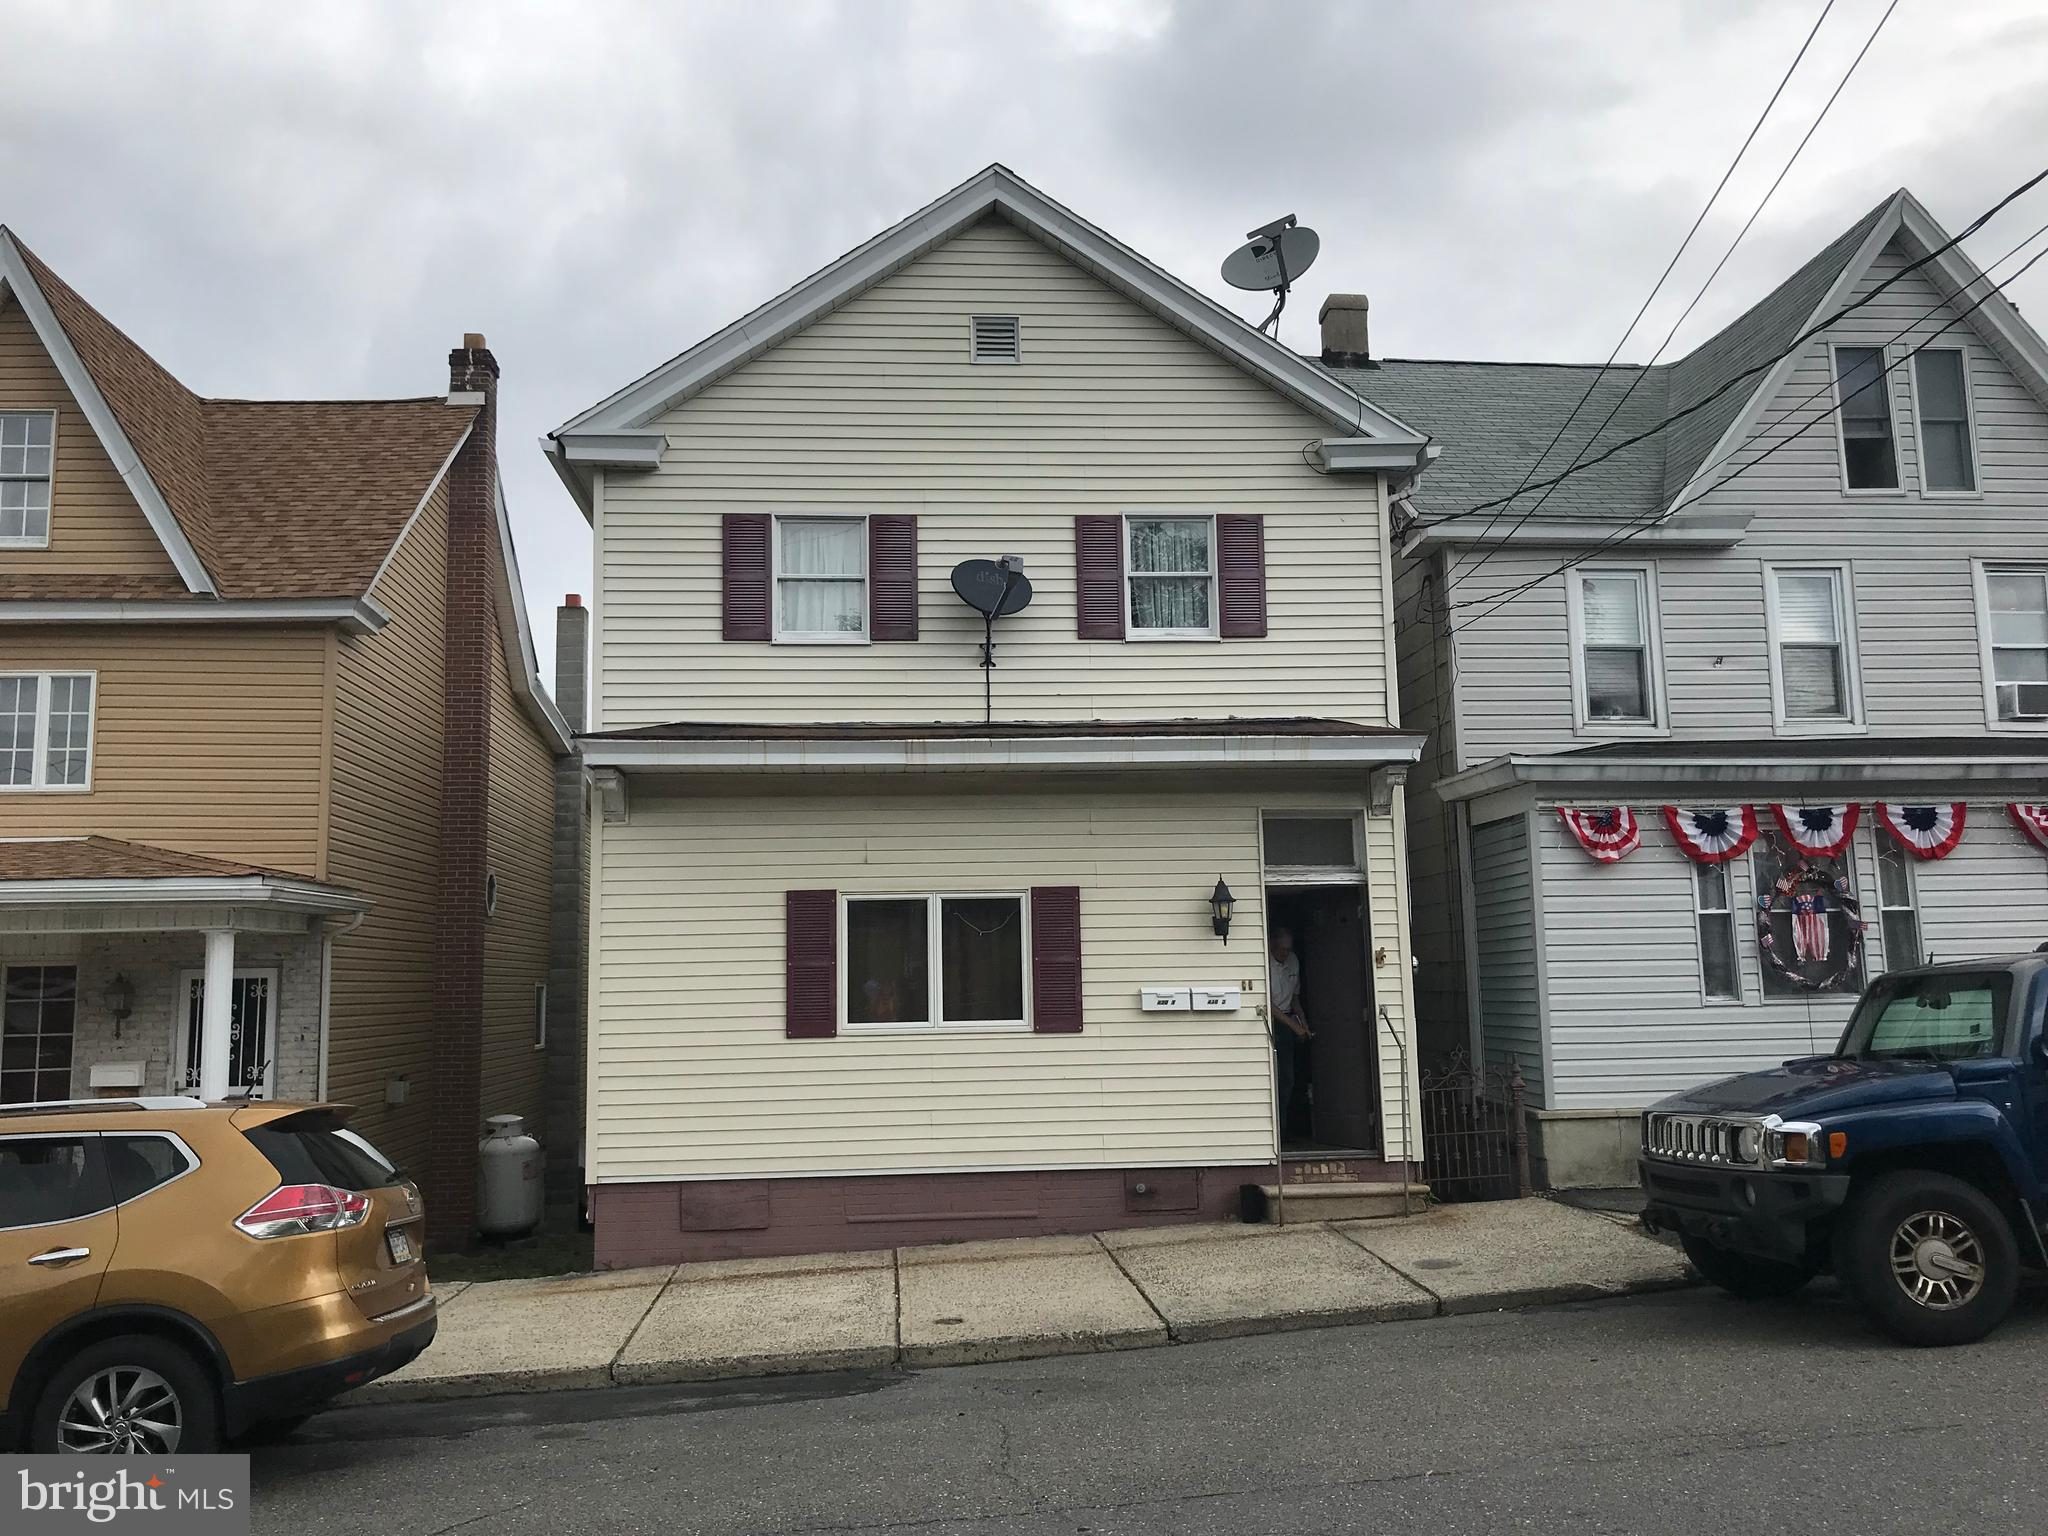 430 W WHITE STREET, SUMMIT HILL, PA 18250